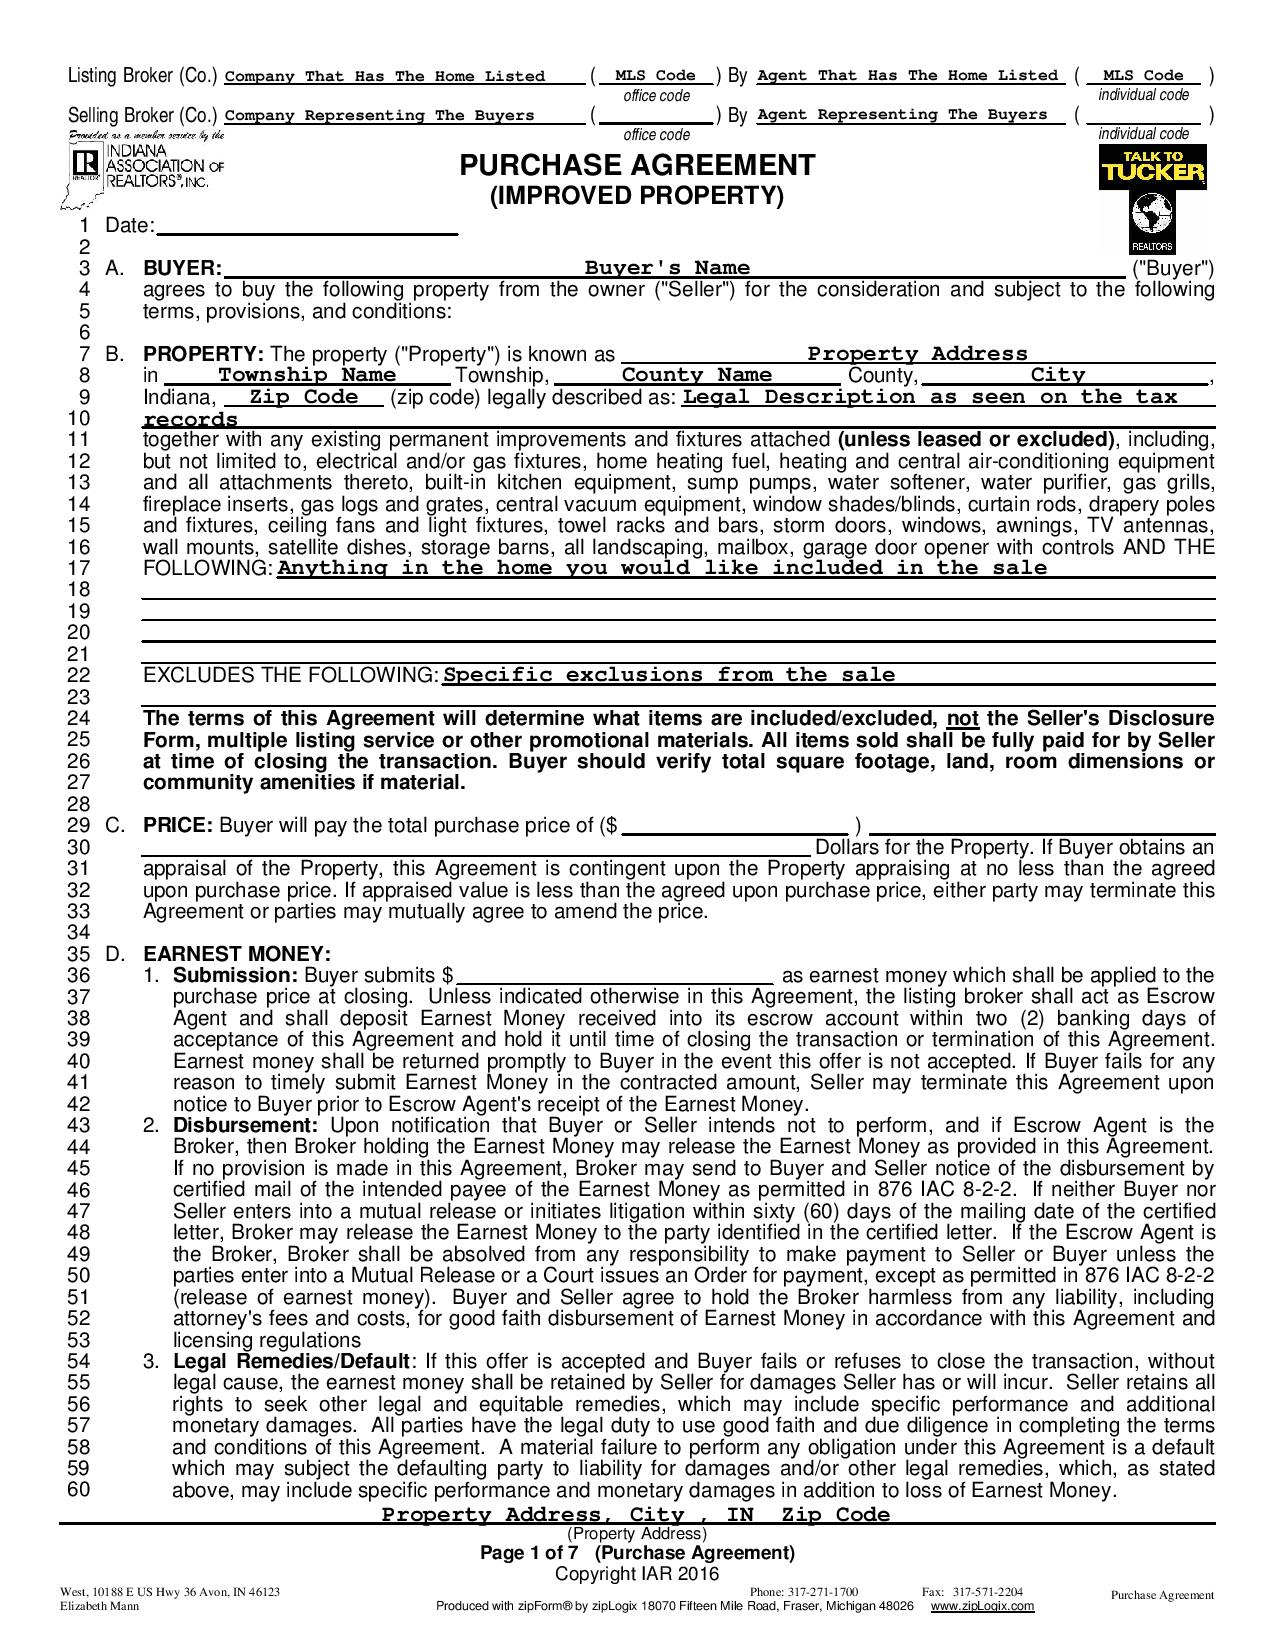 Indiana Purchase Agreement Ideas | Business Document